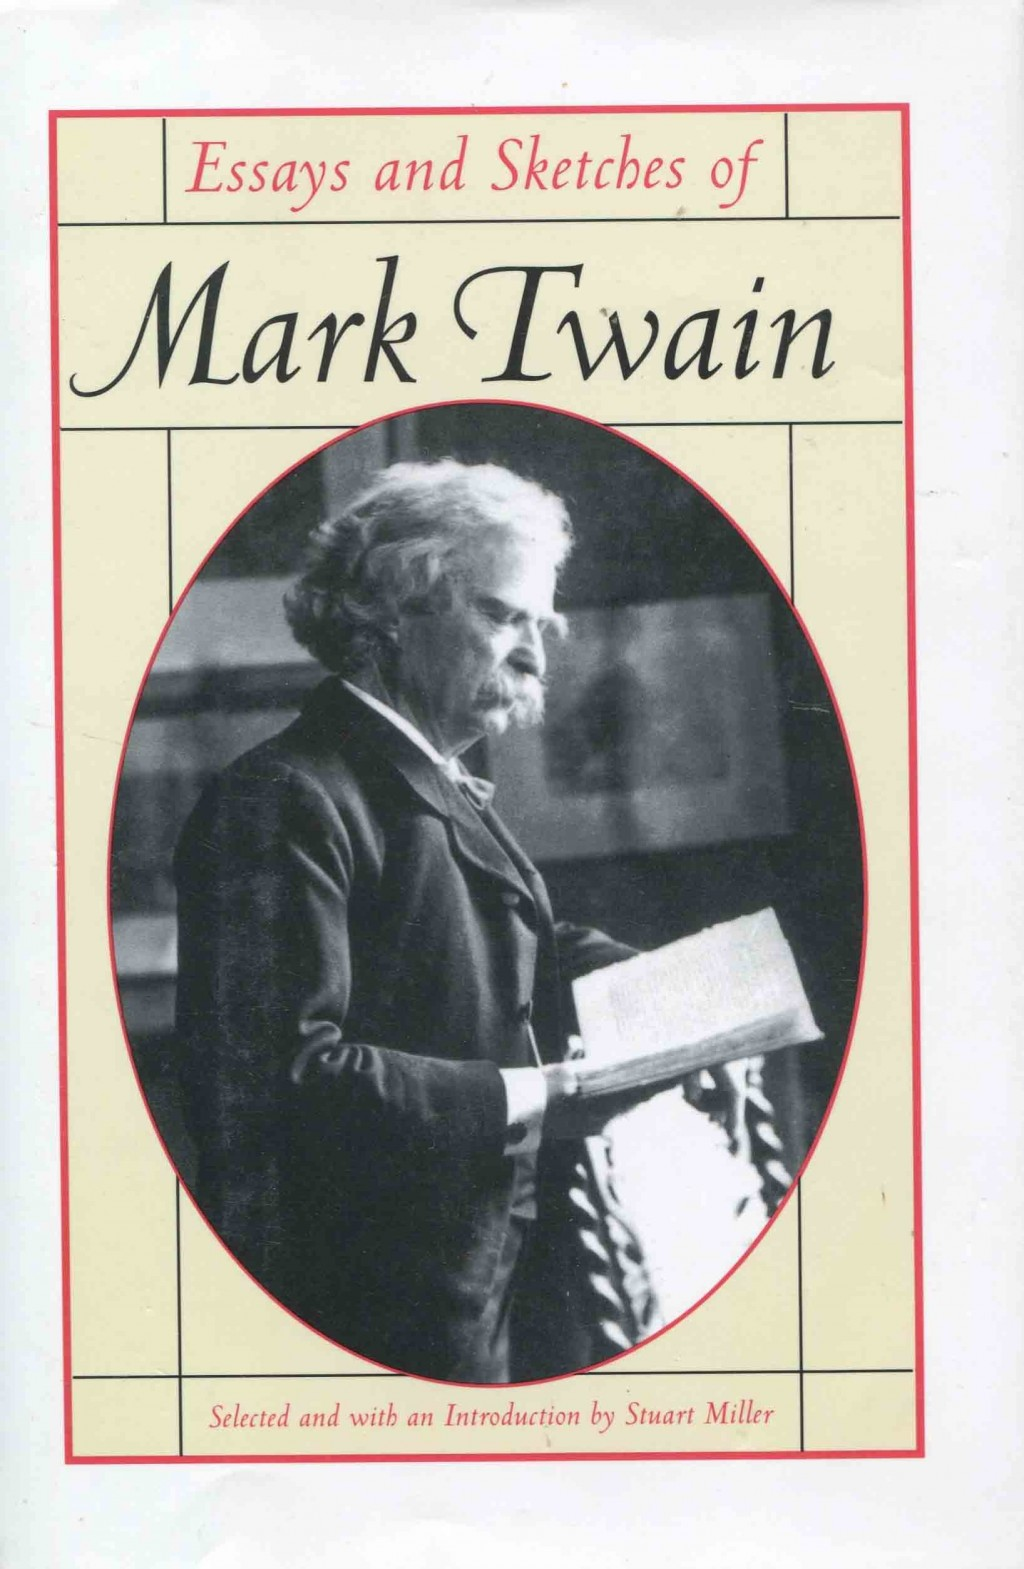 018 Mark Twain Essays 71ujezudo4l Essay Surprising Pdf On Writing Nonfiction Large